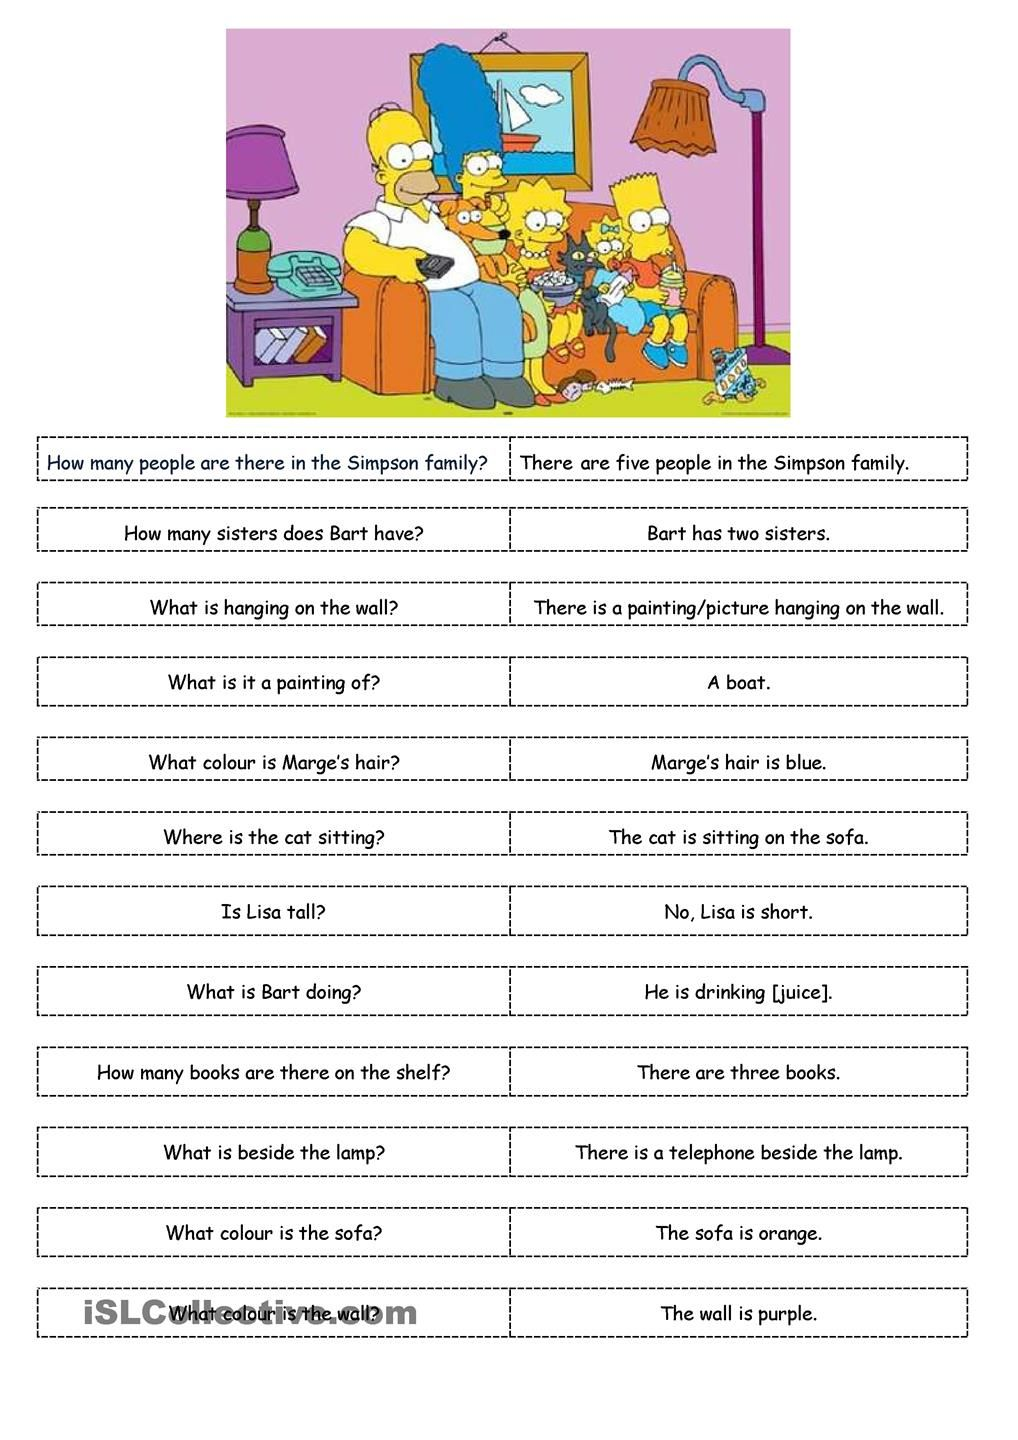 the simpsons worksheets english buscar con google english worksheets pinterest english. Black Bedroom Furniture Sets. Home Design Ideas